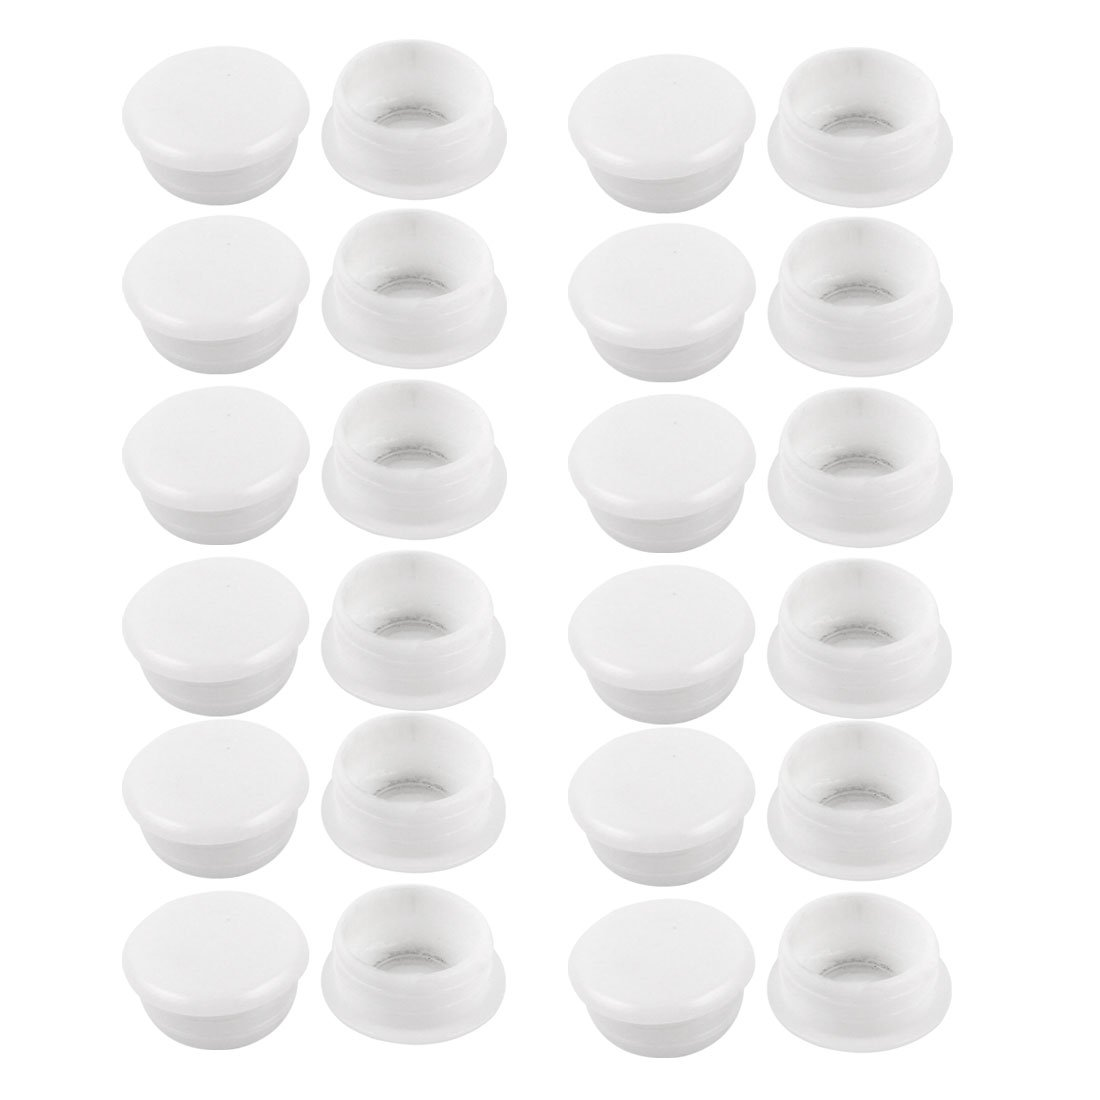 24 Pcs White Plastic 15mm Dia Round Tubing Tube Insert Caps Covers uxcell a14091000ux0249